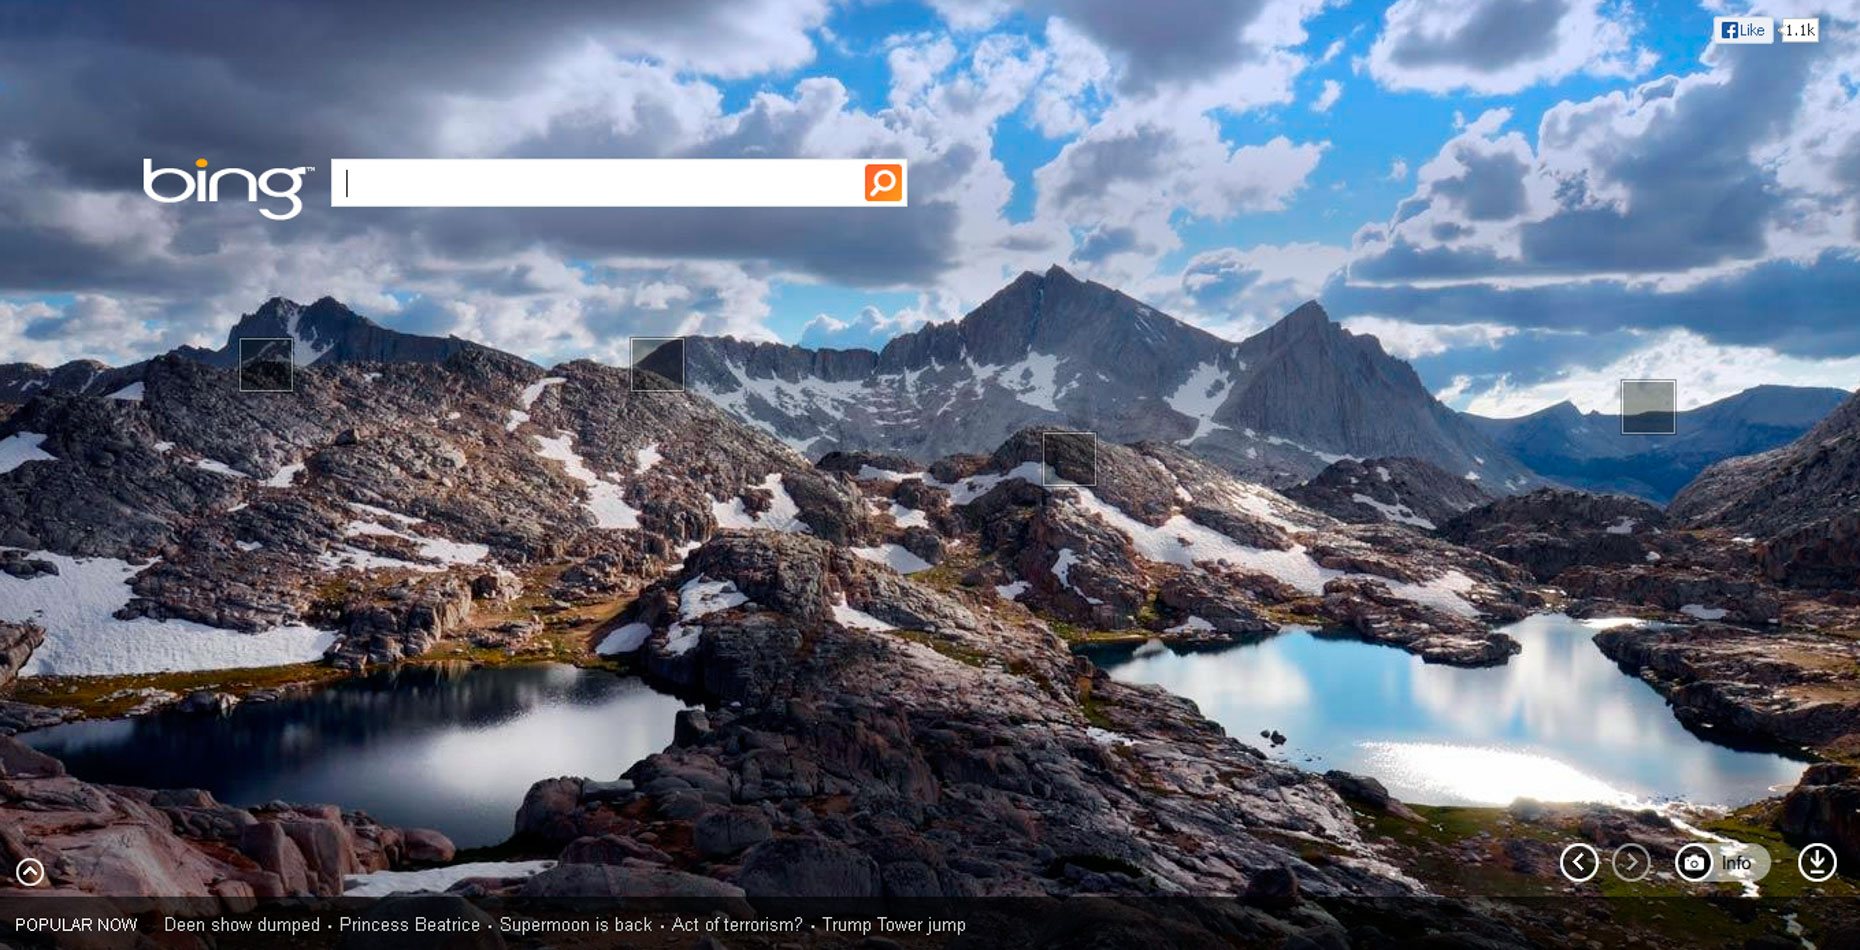 Microsoft - Bing Homepage - The Sierra High Route, California